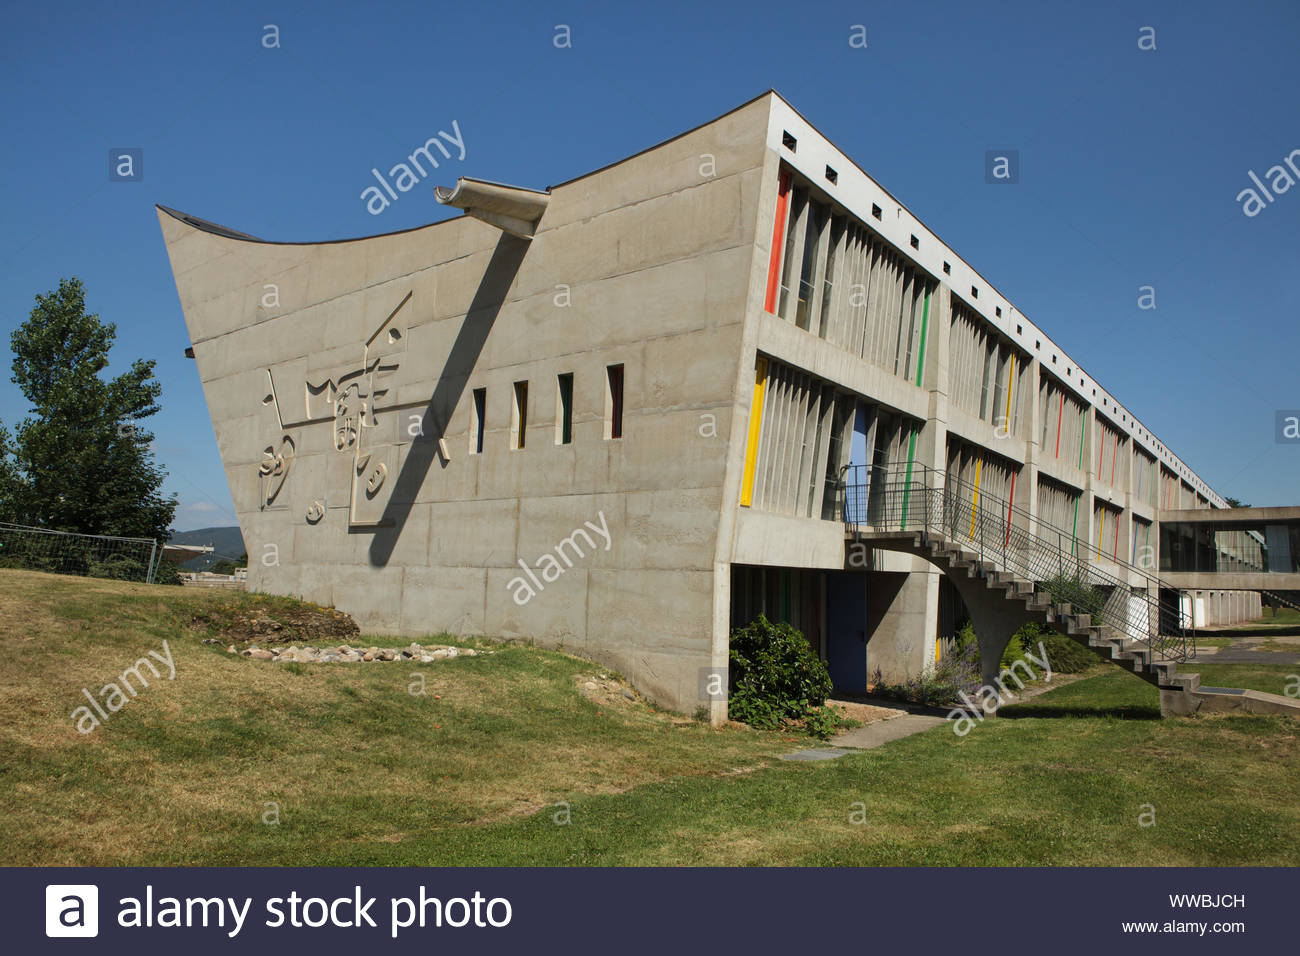 cultural centre maison de la culture de firminy vert designed by swiss modernist architect le corbusier 1965 in firminy near lyon france WWBJCH